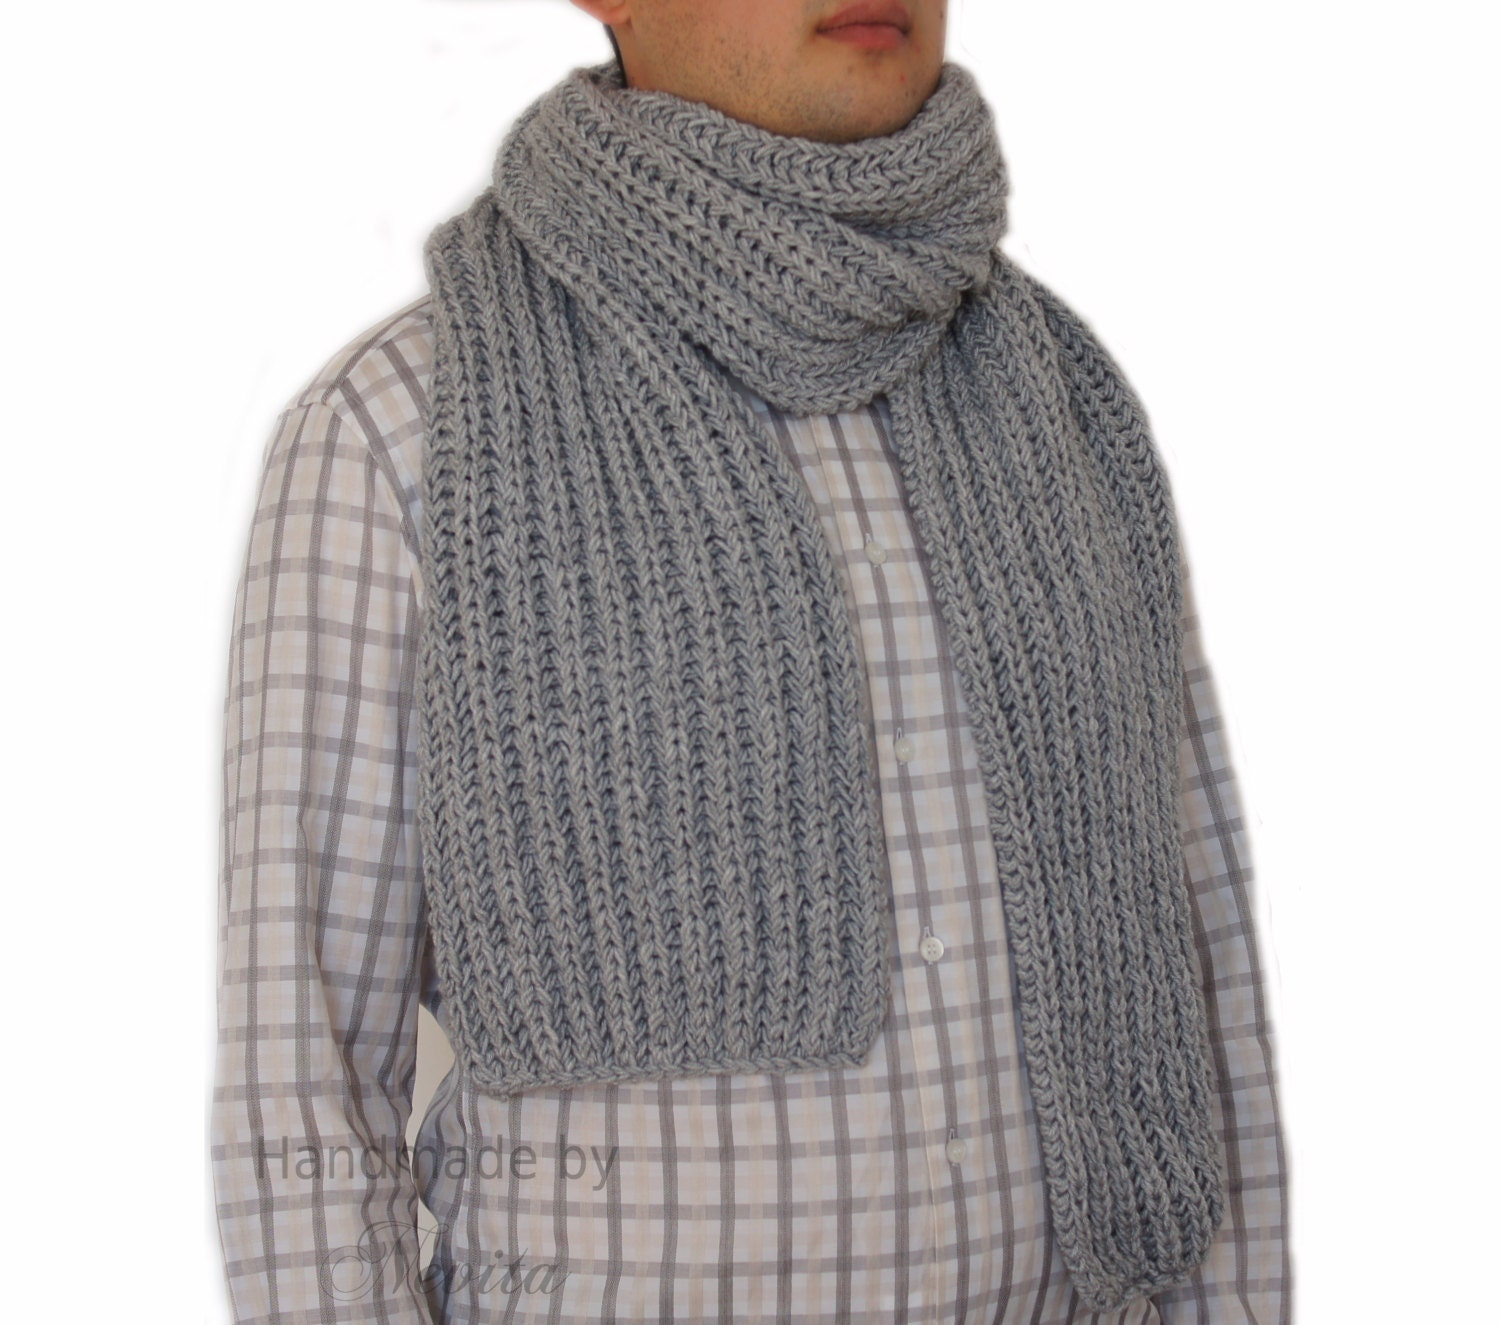 knit mens scarf duality delta by gridjunky on etsy